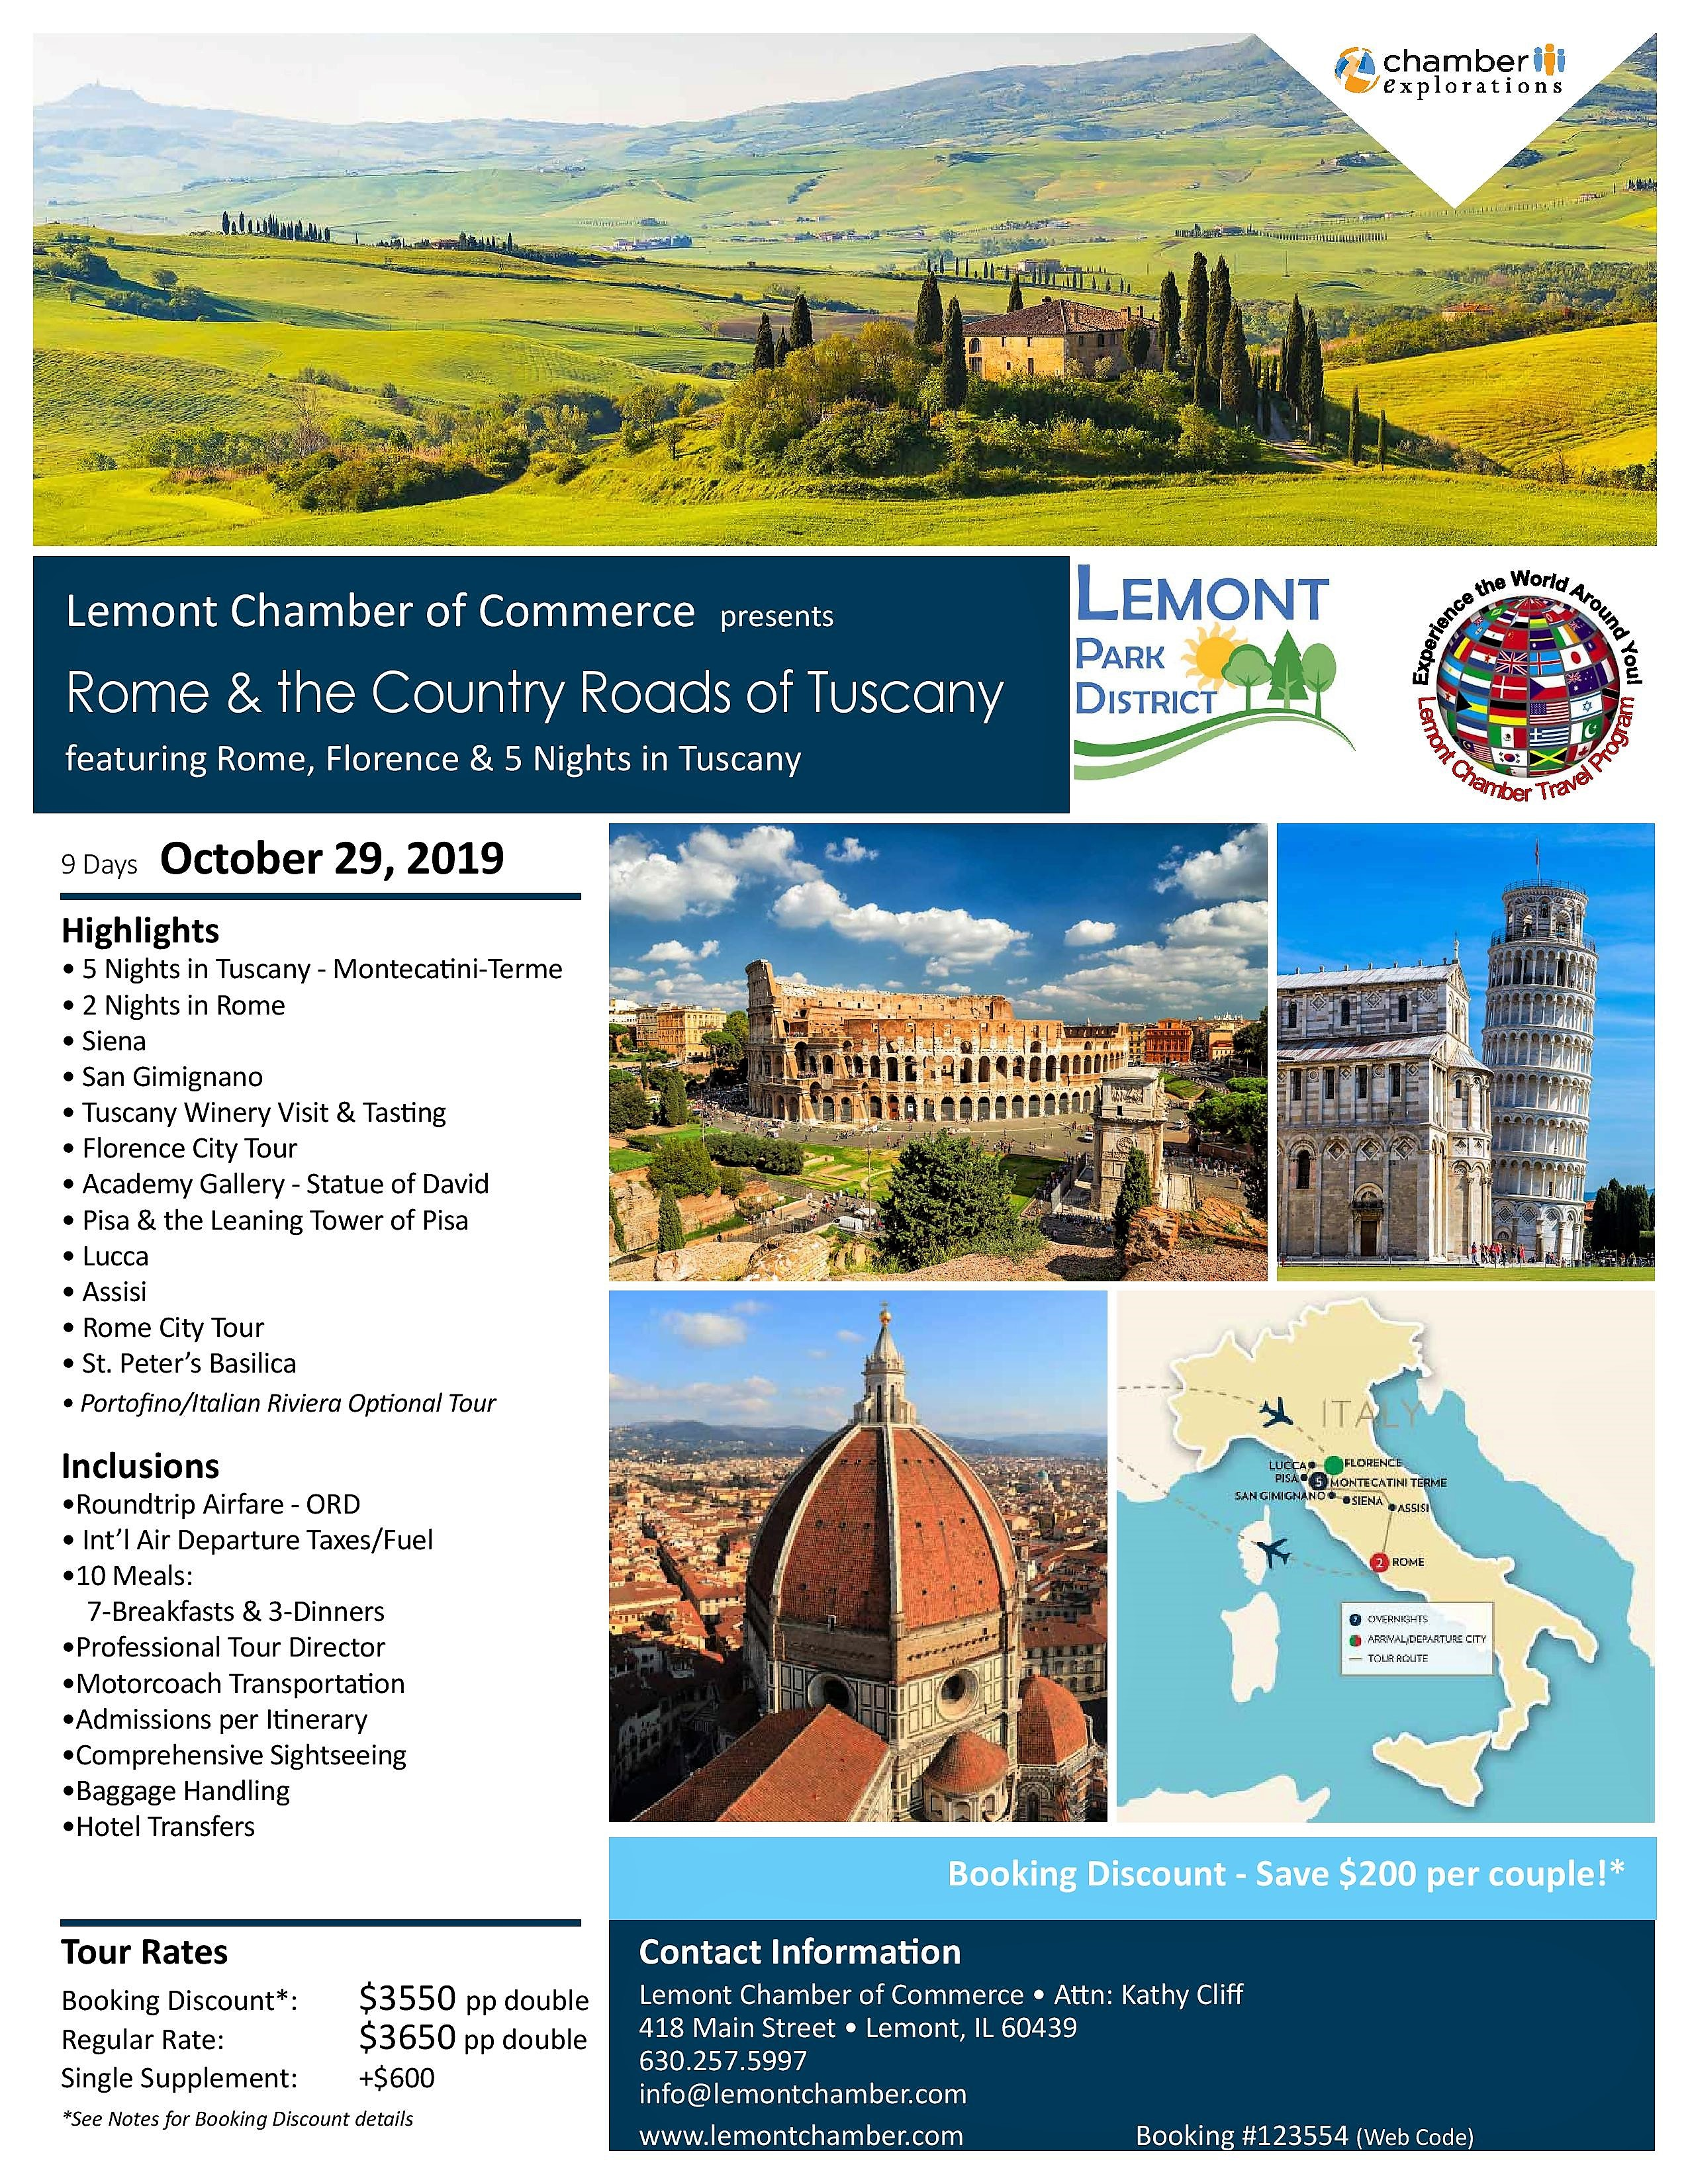 ROME-and-THE-COUNTRY-ROADS-OF-TUSCANY---Lemont-Chamber-of-Commerce---29OCT19-page-001